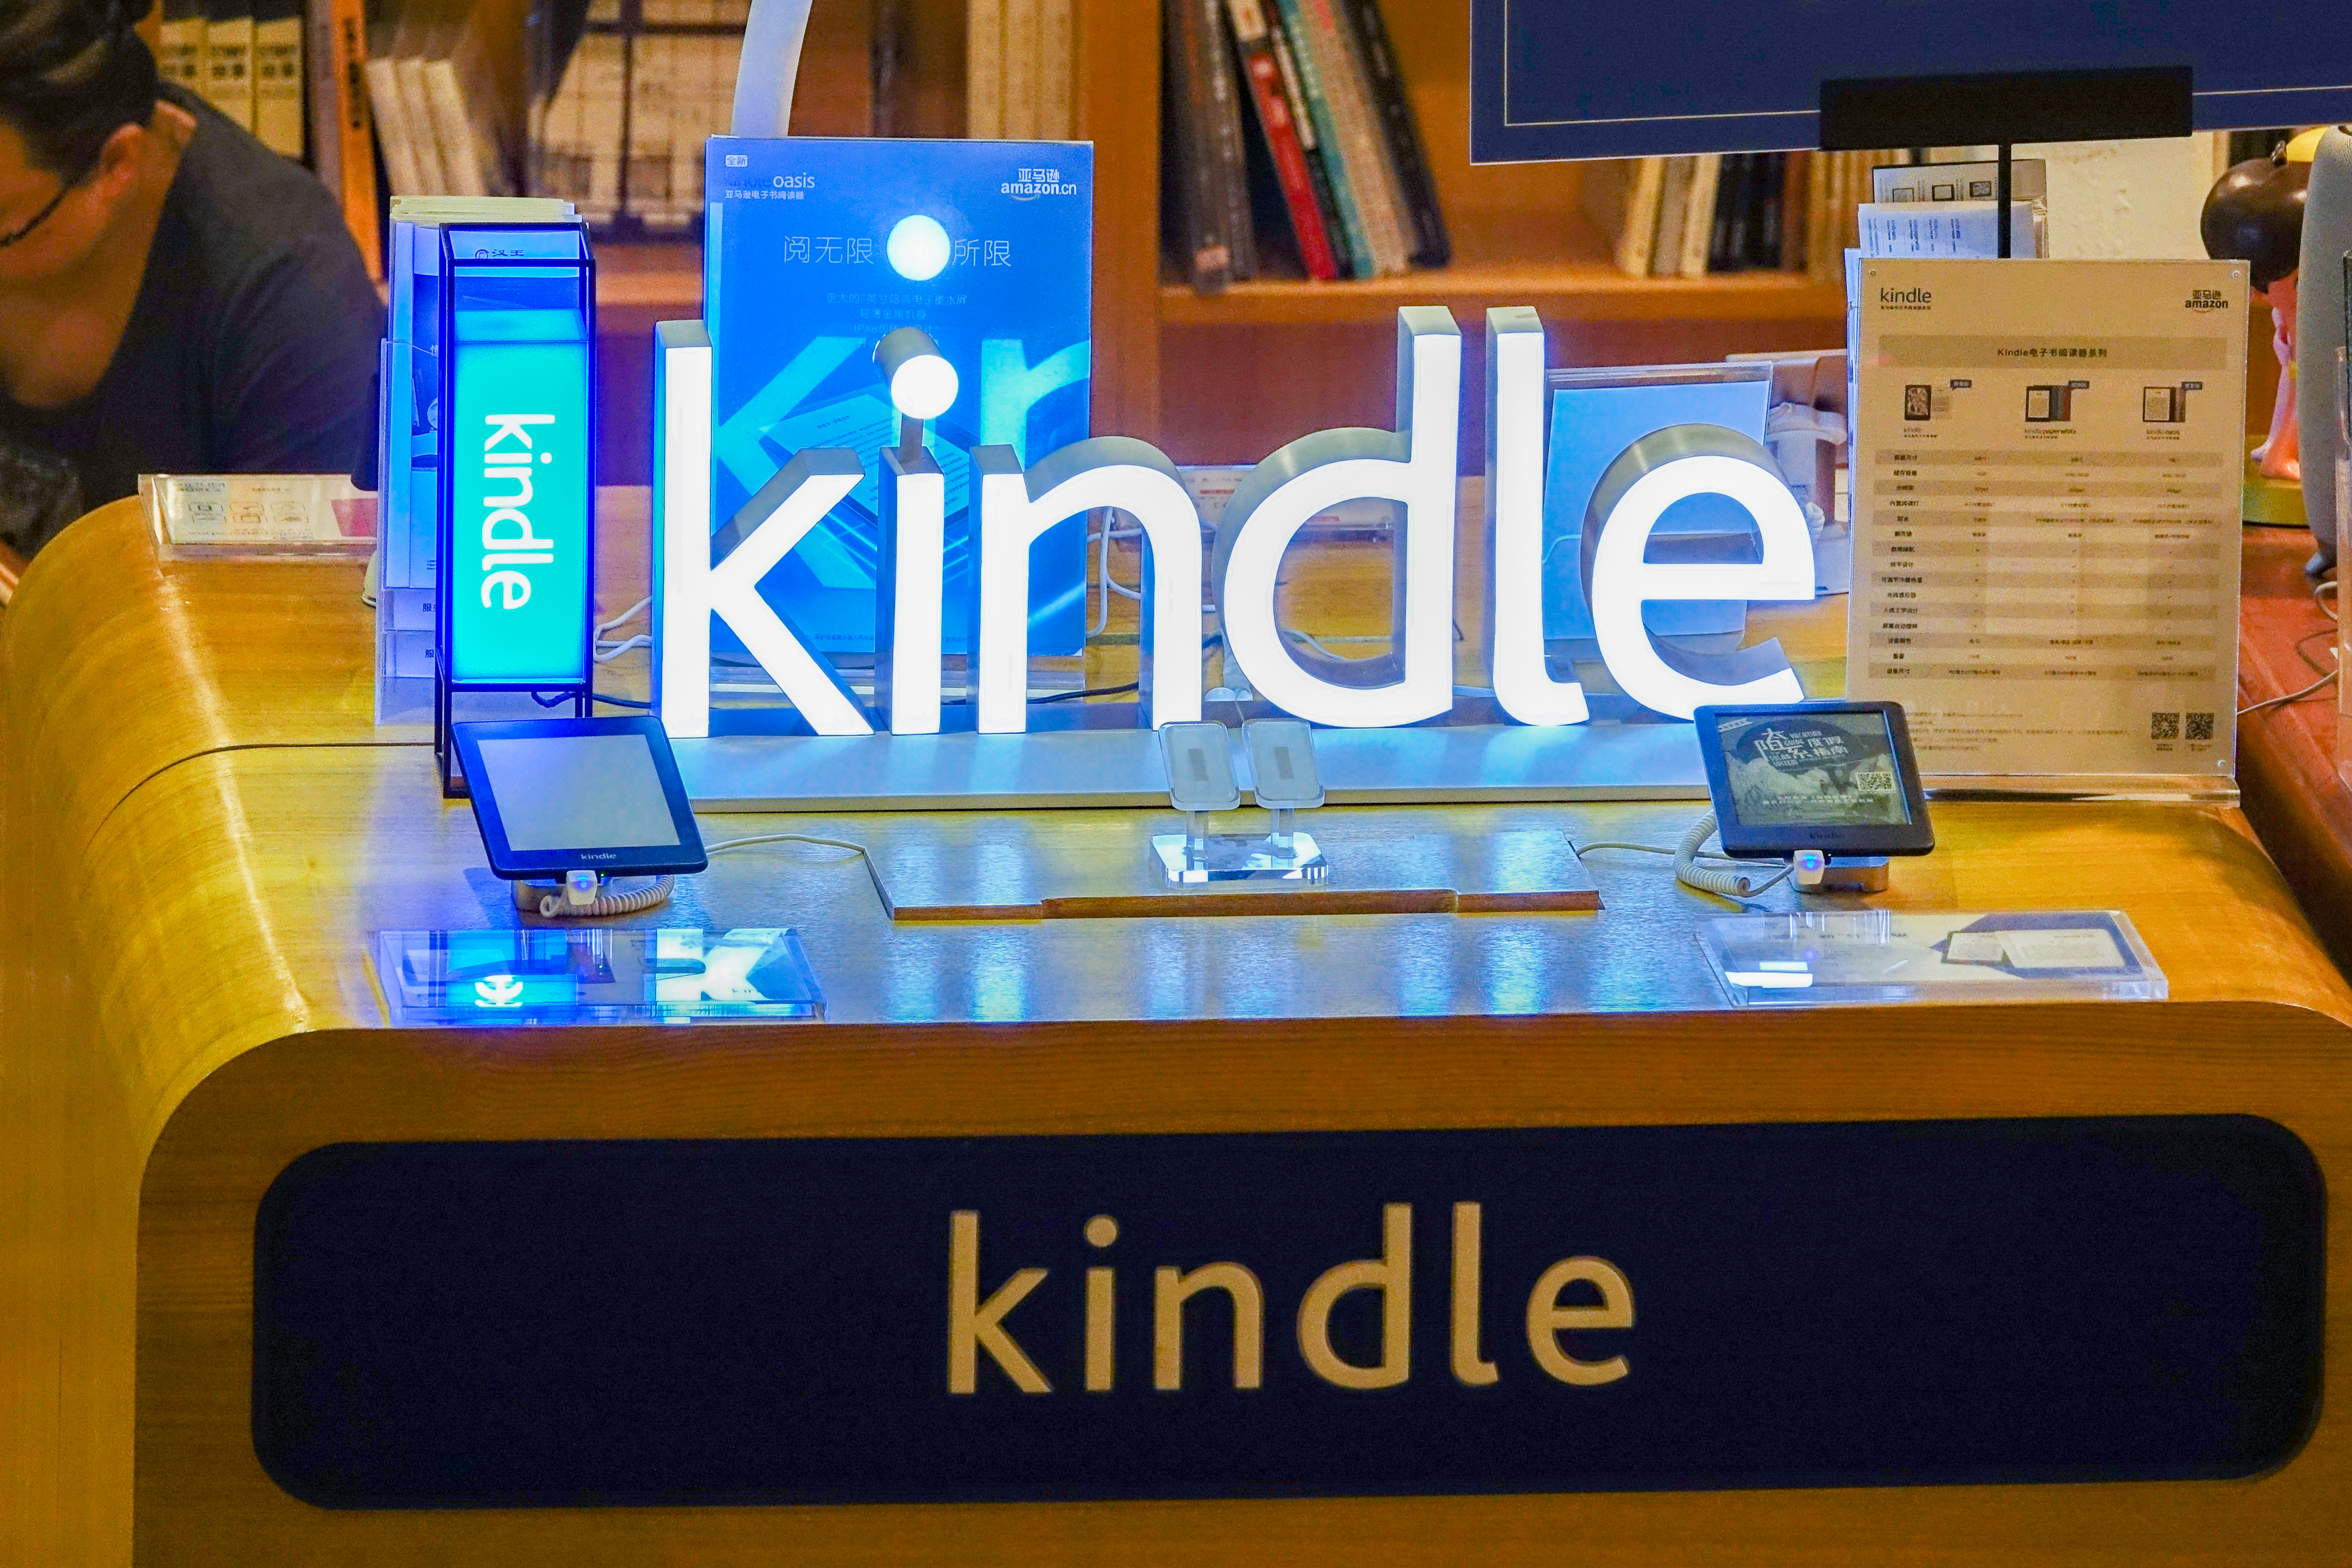 Amazon Deals Lowest Price On Kindles Since Black Friday Money